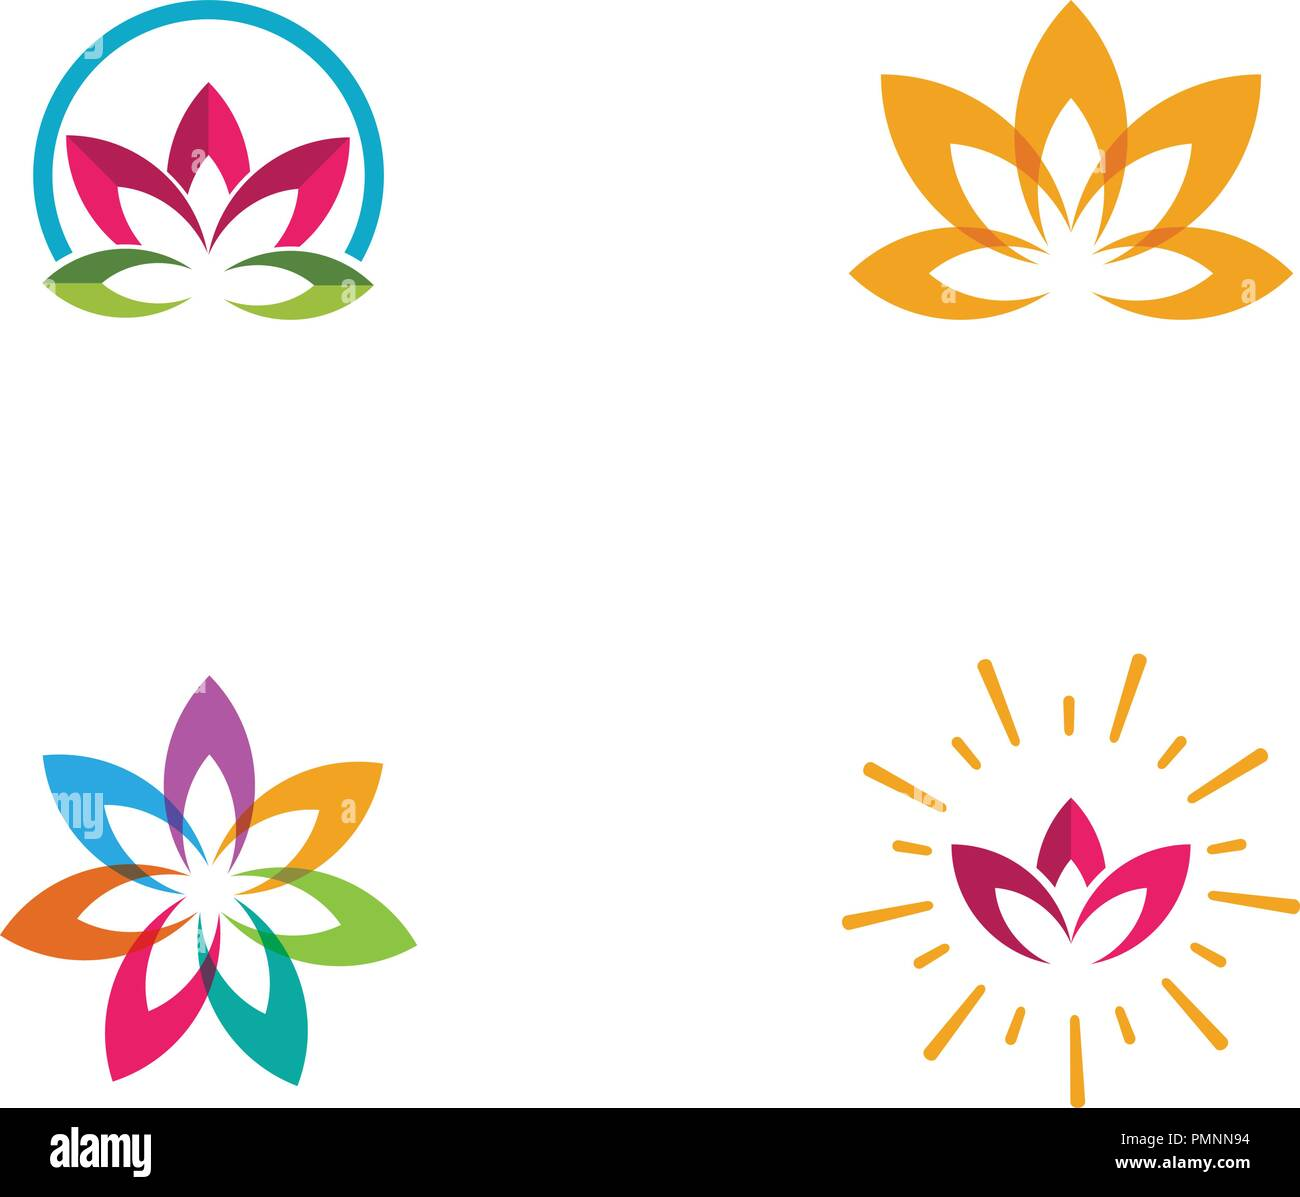 beauty vector lotus flowers design logo template icon stock vector